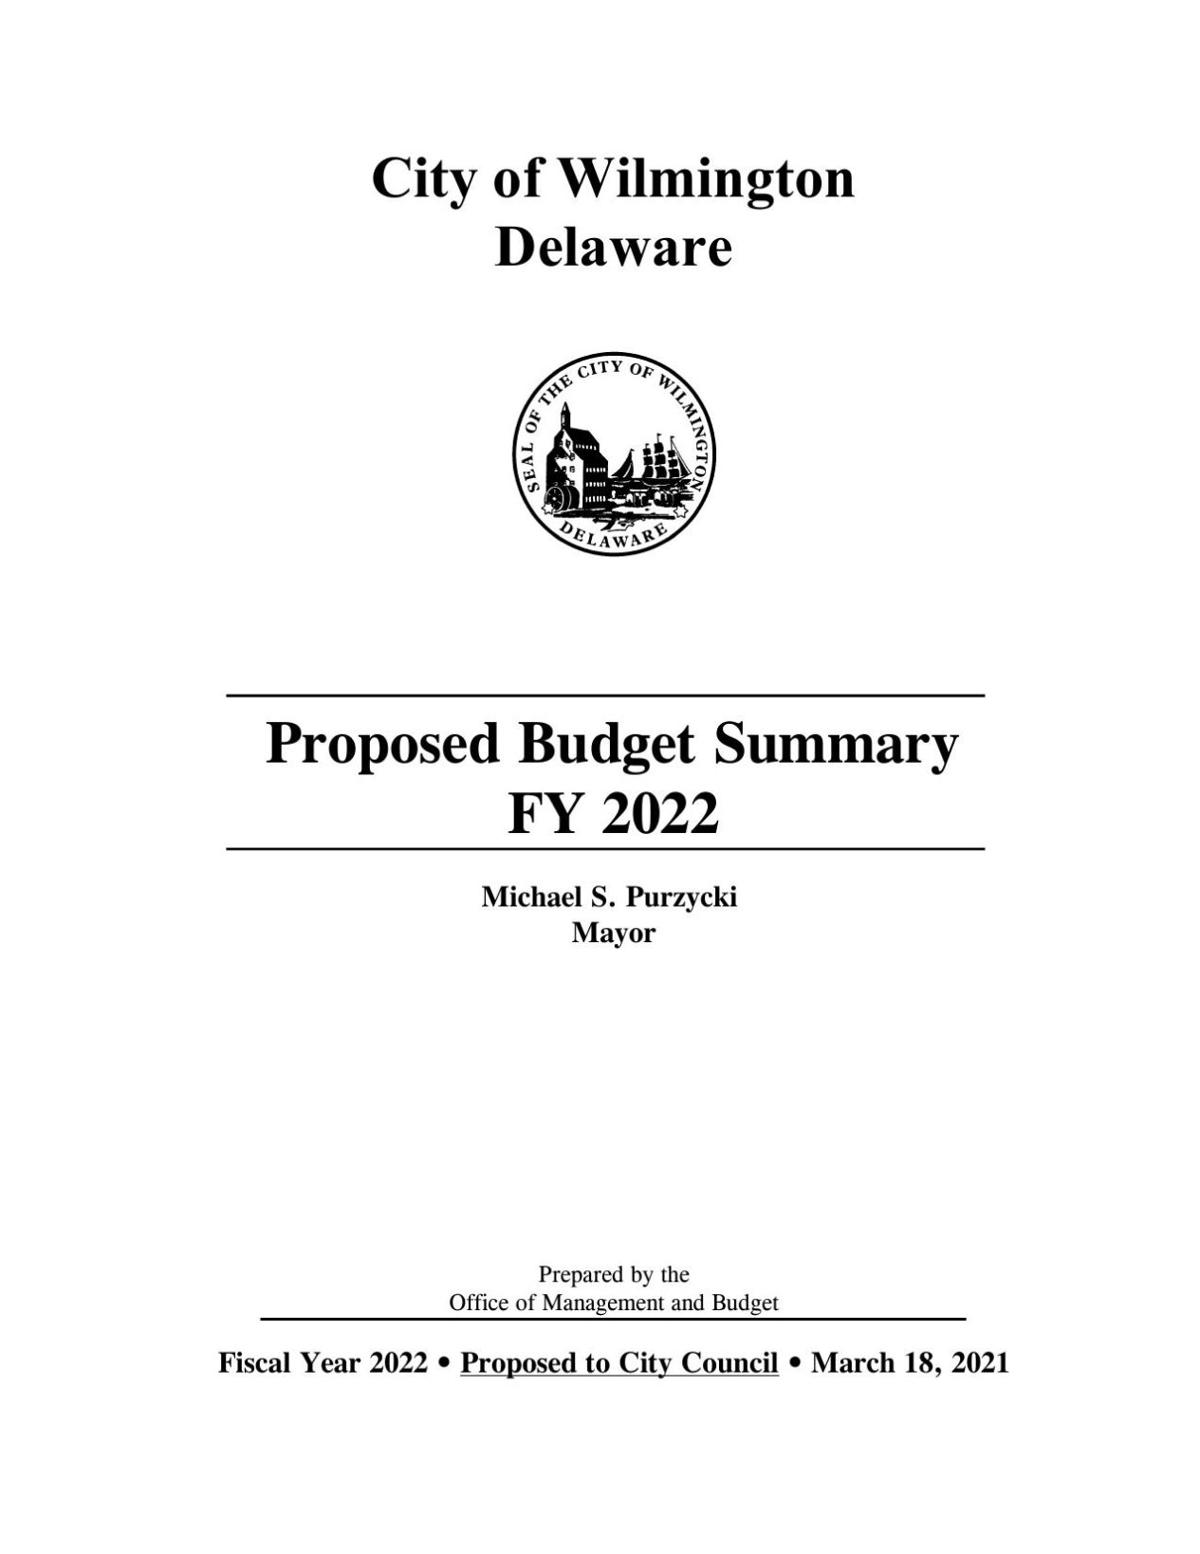 2022 Proposed STAND ALONE BUDGET SUMMARY.pdf